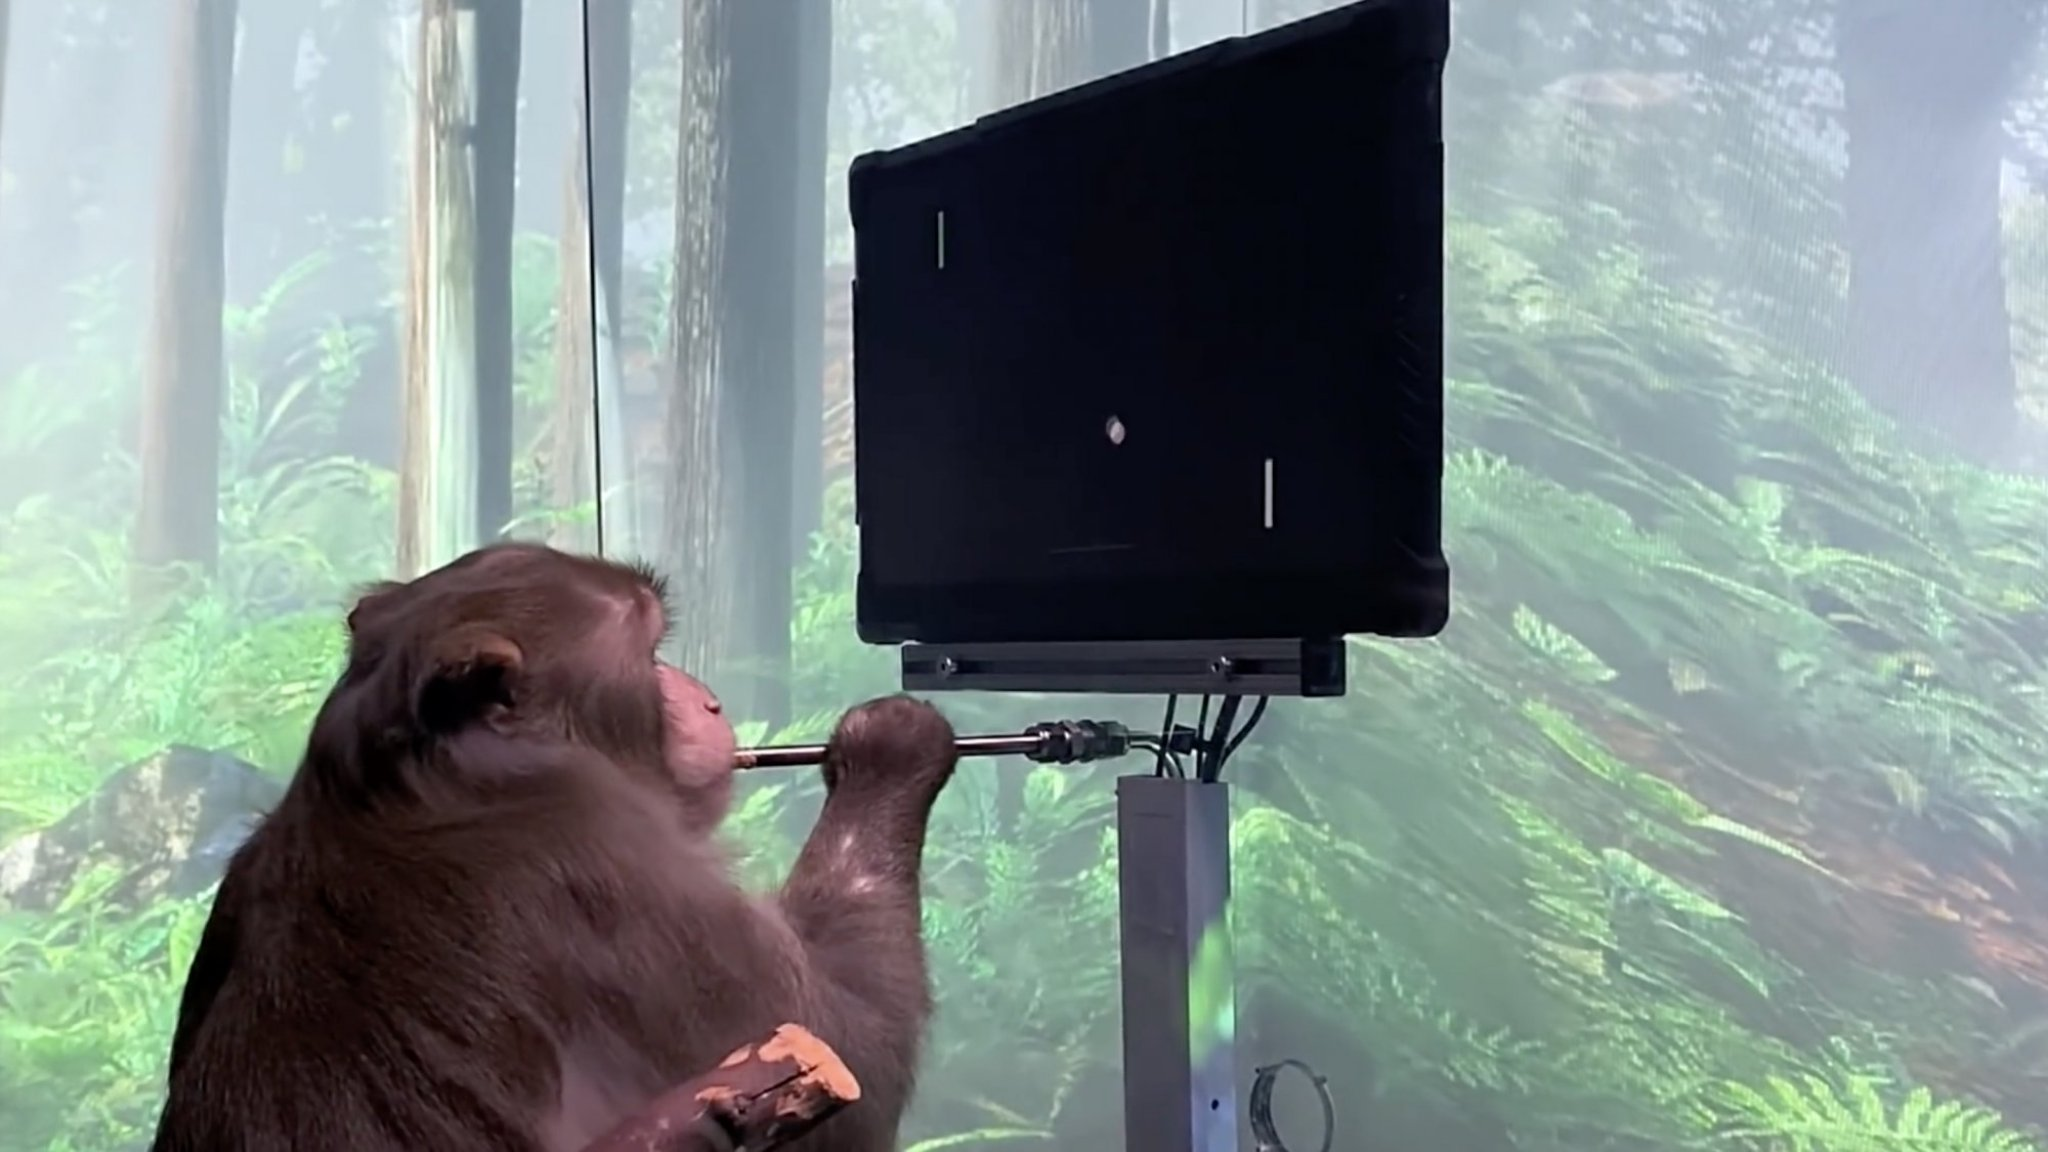 Startup Elon Musk features a monkey controlling Pong with a brain